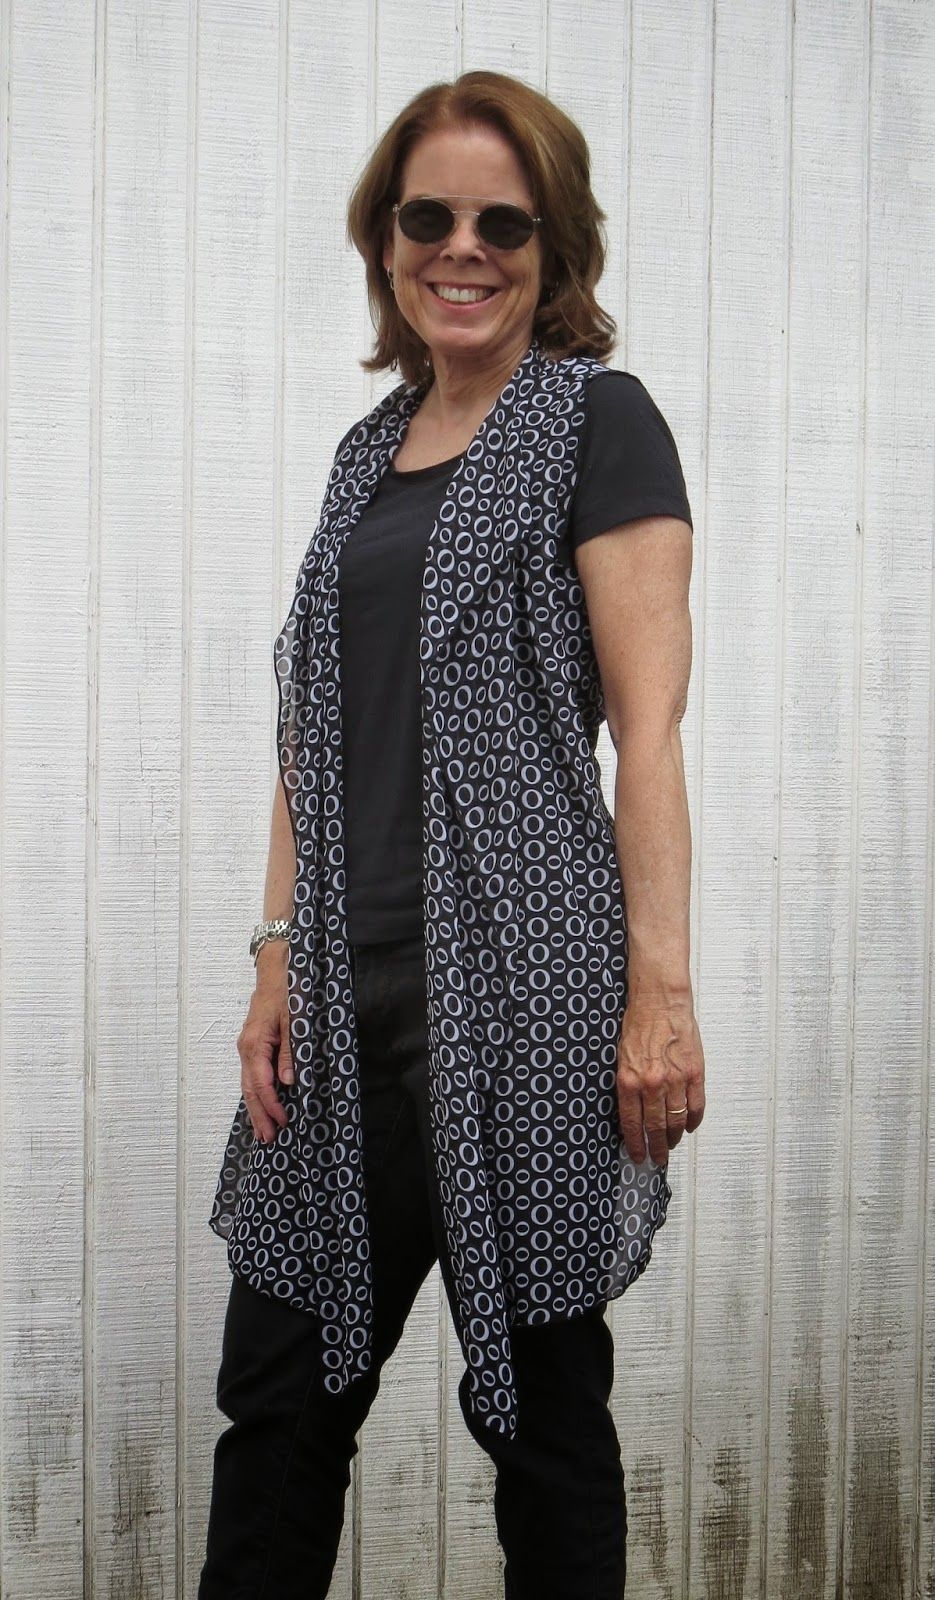 Vest For Women Over 50 Styling Over 50 Fashion Over 50